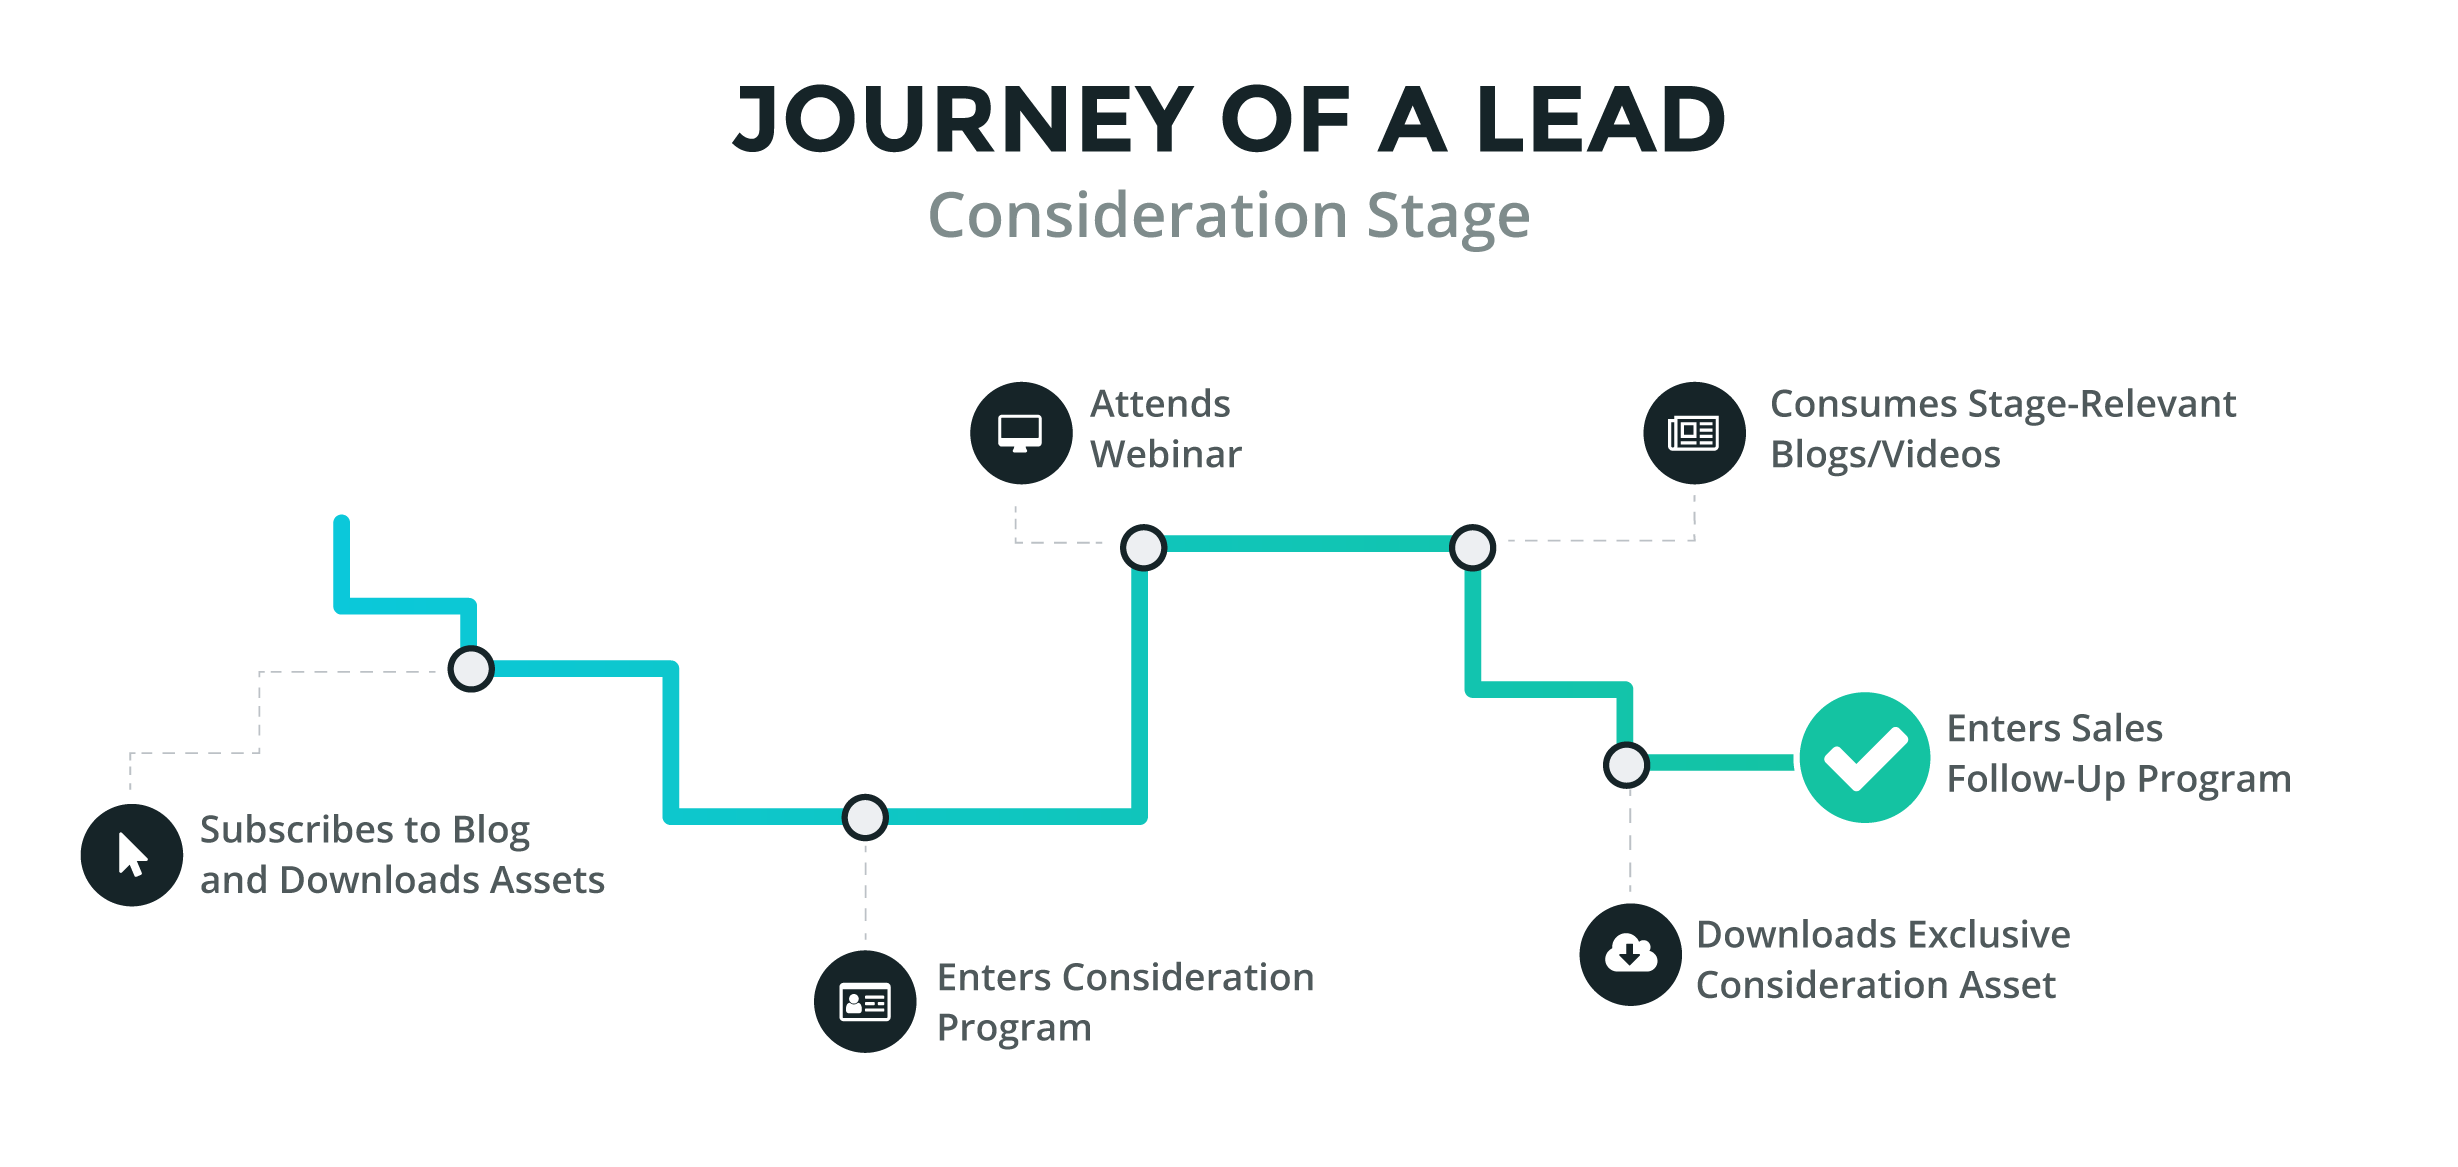 Marketing Automation: Journey of a Lead in the Consideration Stage